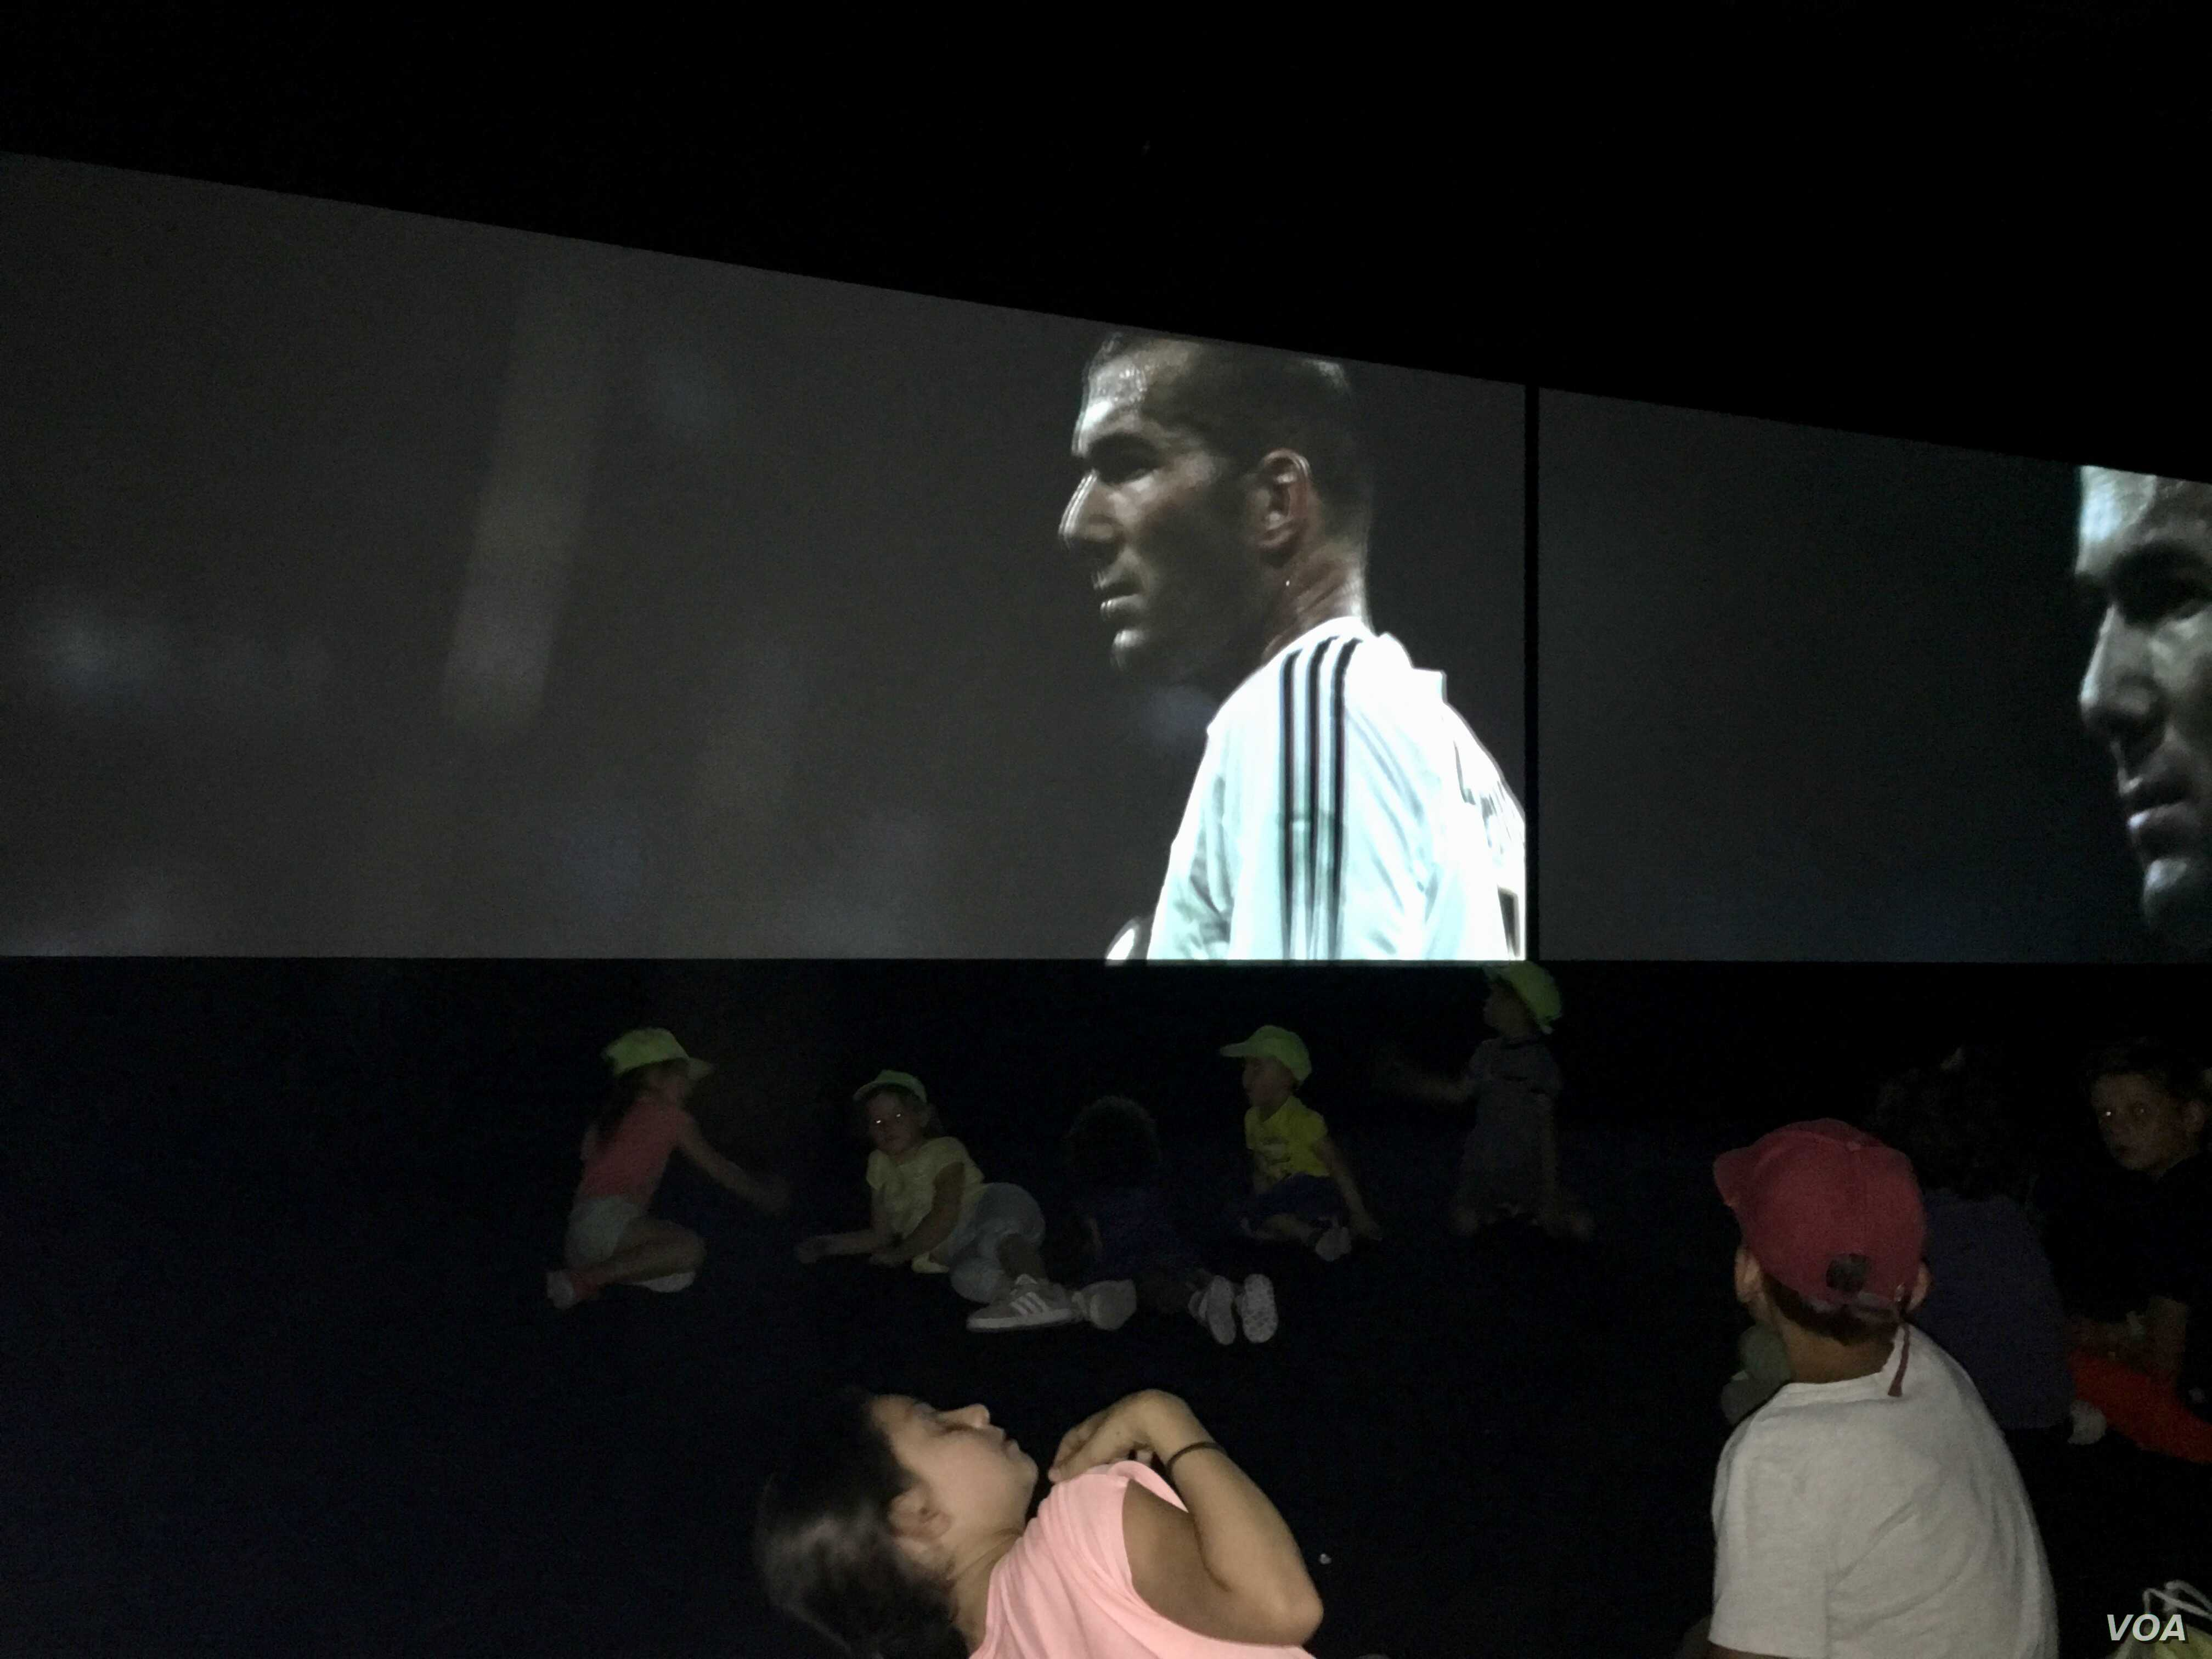 Children watch star player Zinedine Zidane of Algerian descent in replay of 1998 French World Cup victory. (Lisa Bryant/VOA)